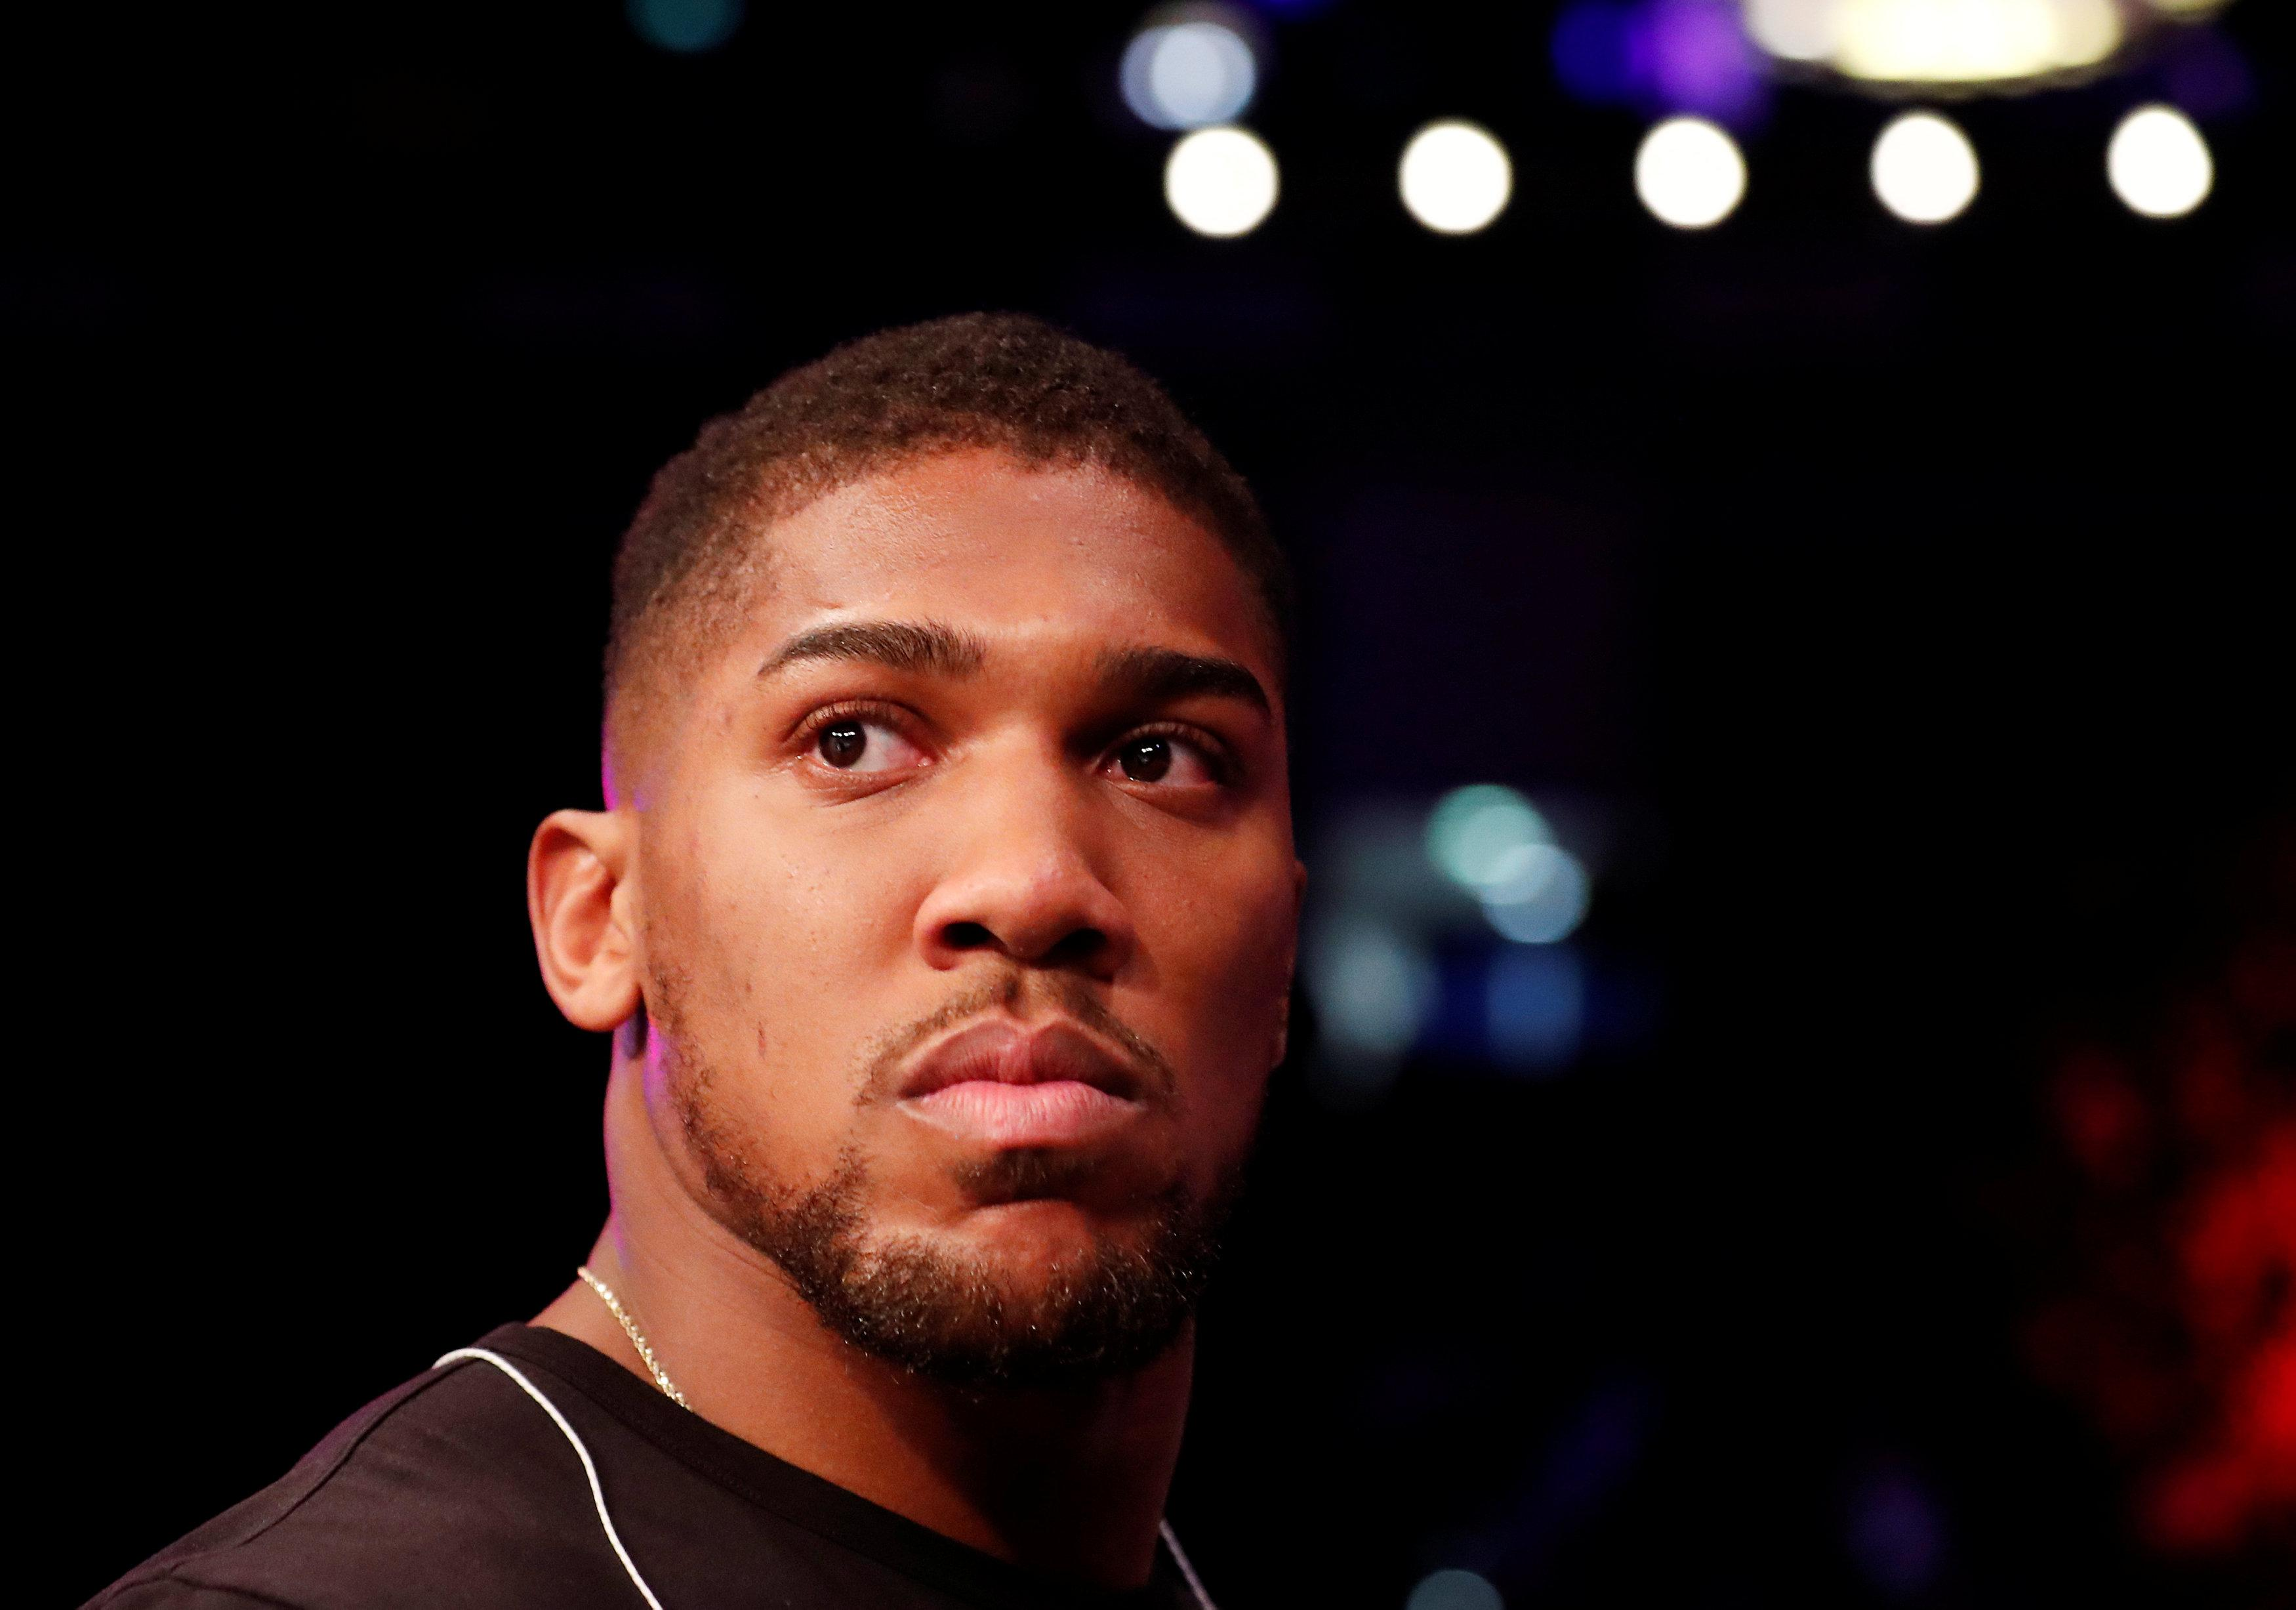 Anthony Joshua is yet to confirm who his next opponent will be at Wembley on April 13